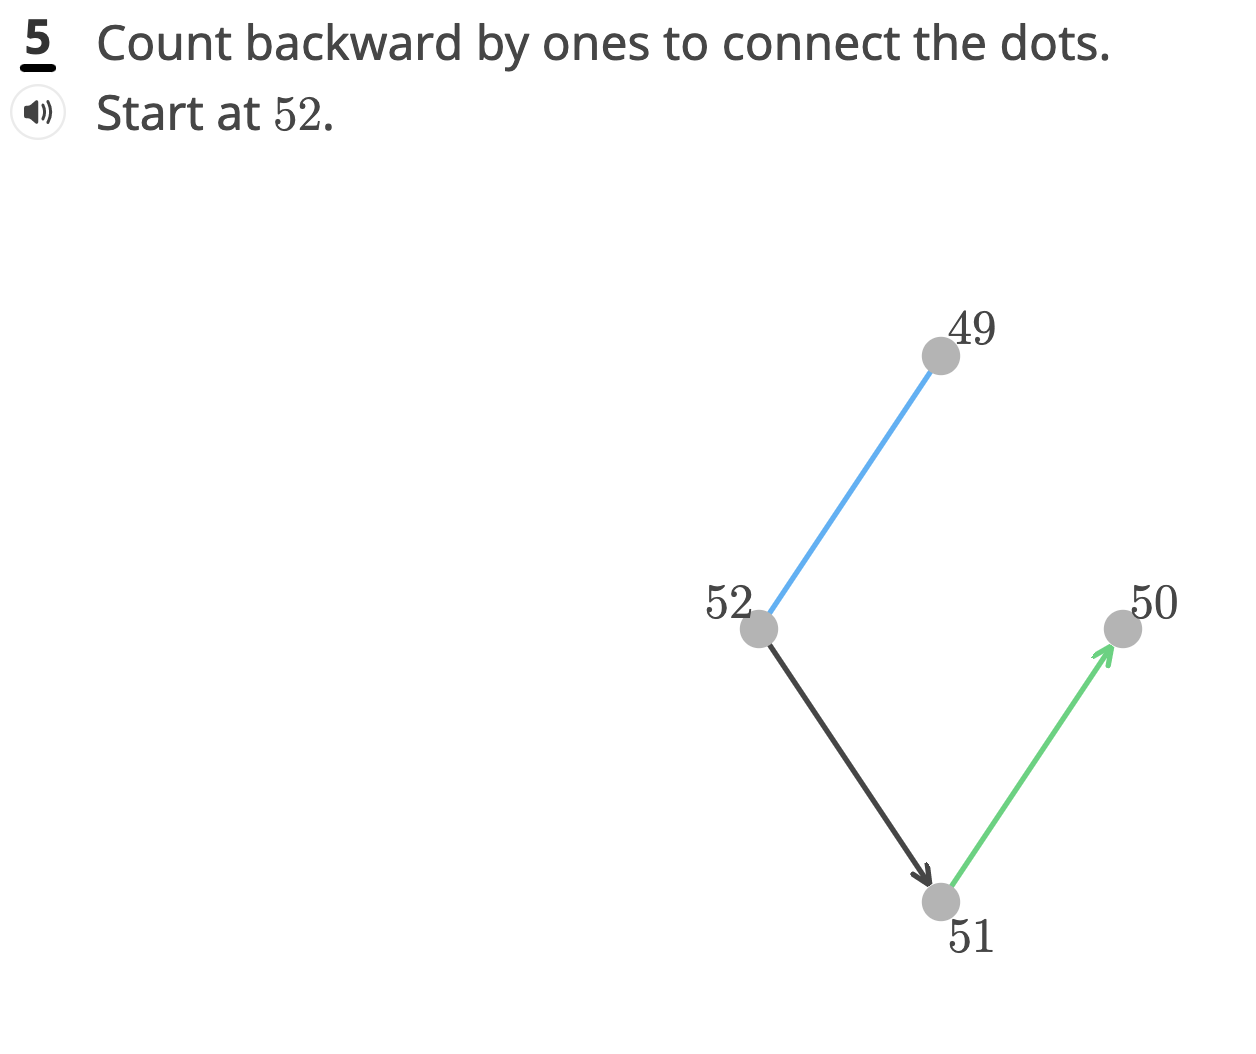 Sample problem showing a question where students connect the dots in order to count backwards from 52.